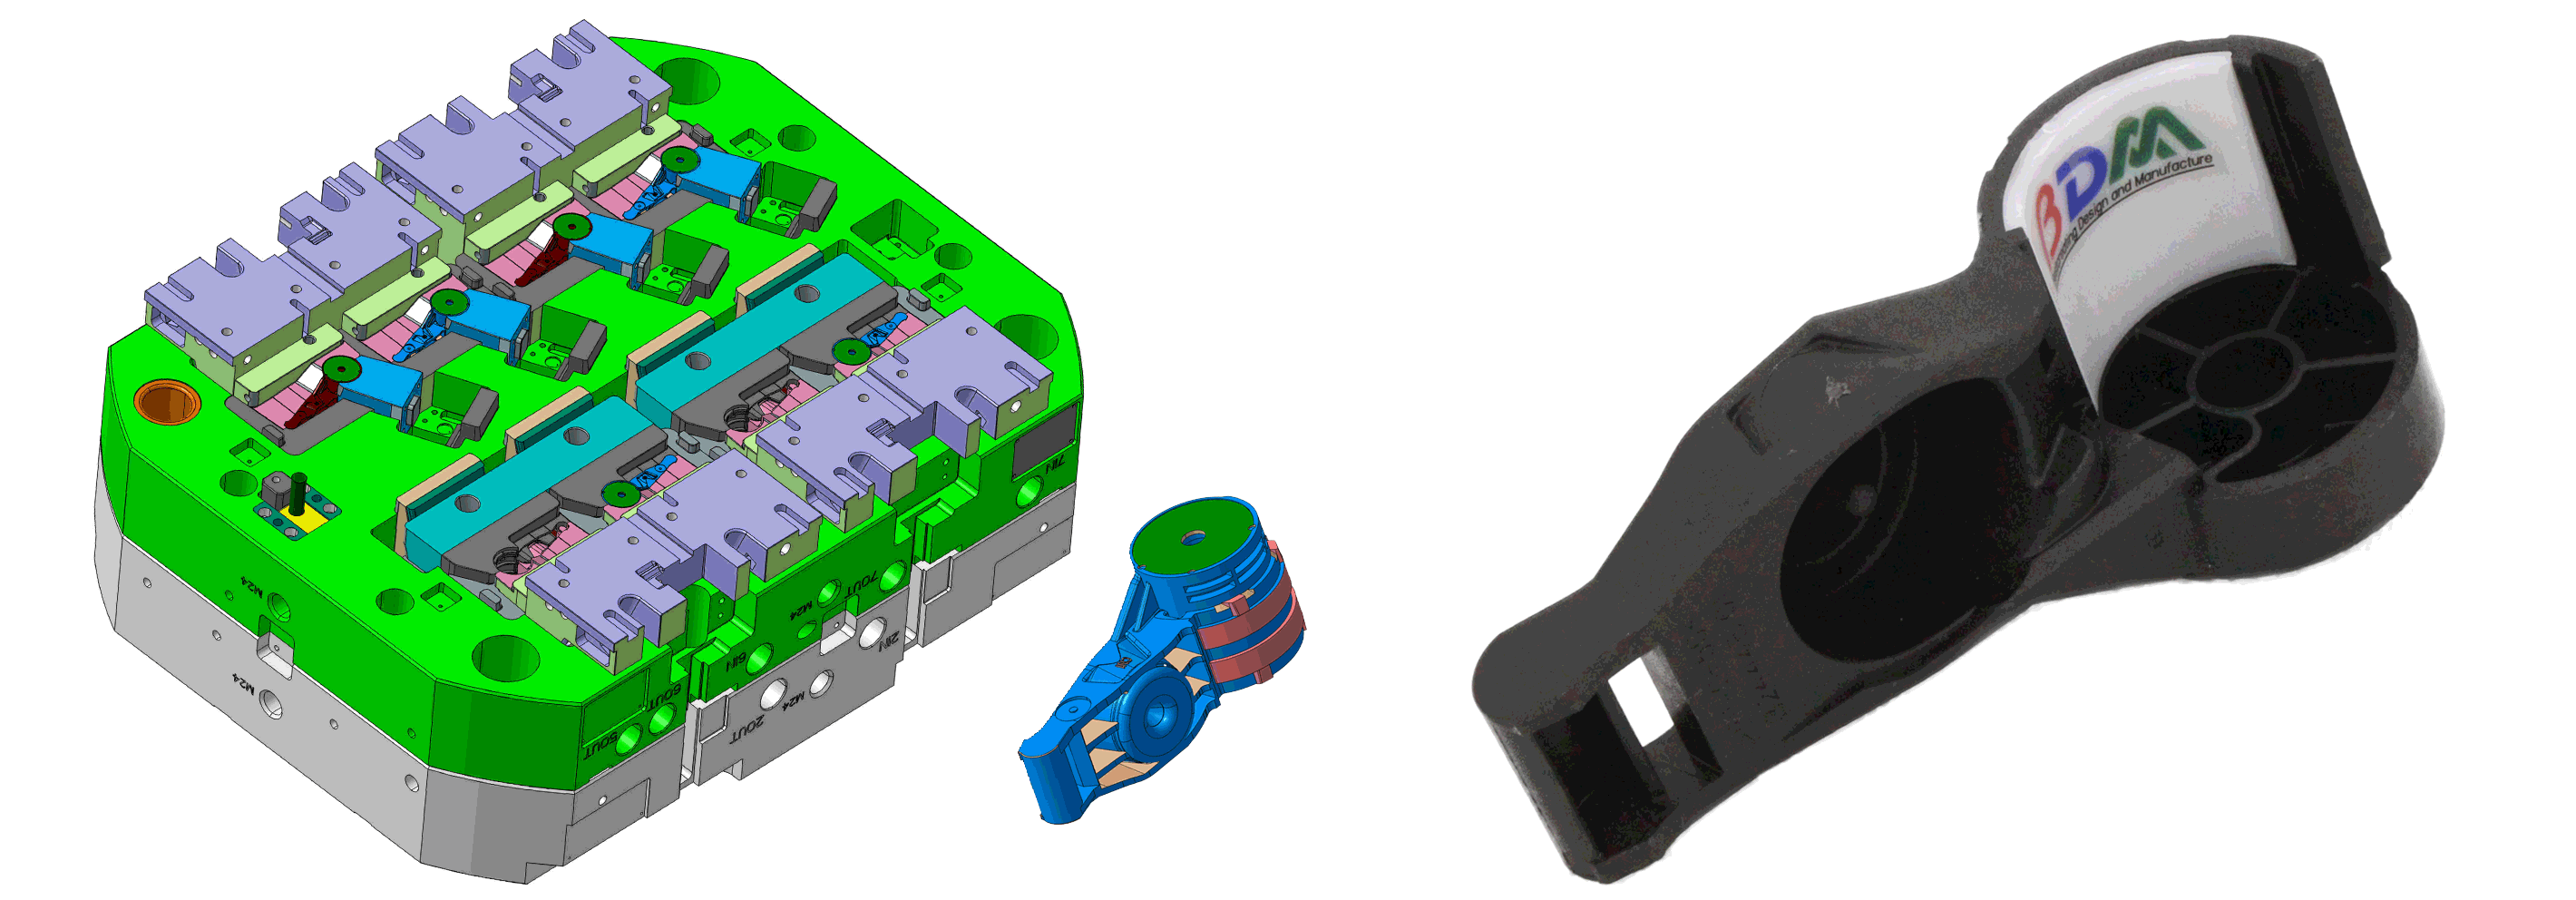 auto double injection mold with product